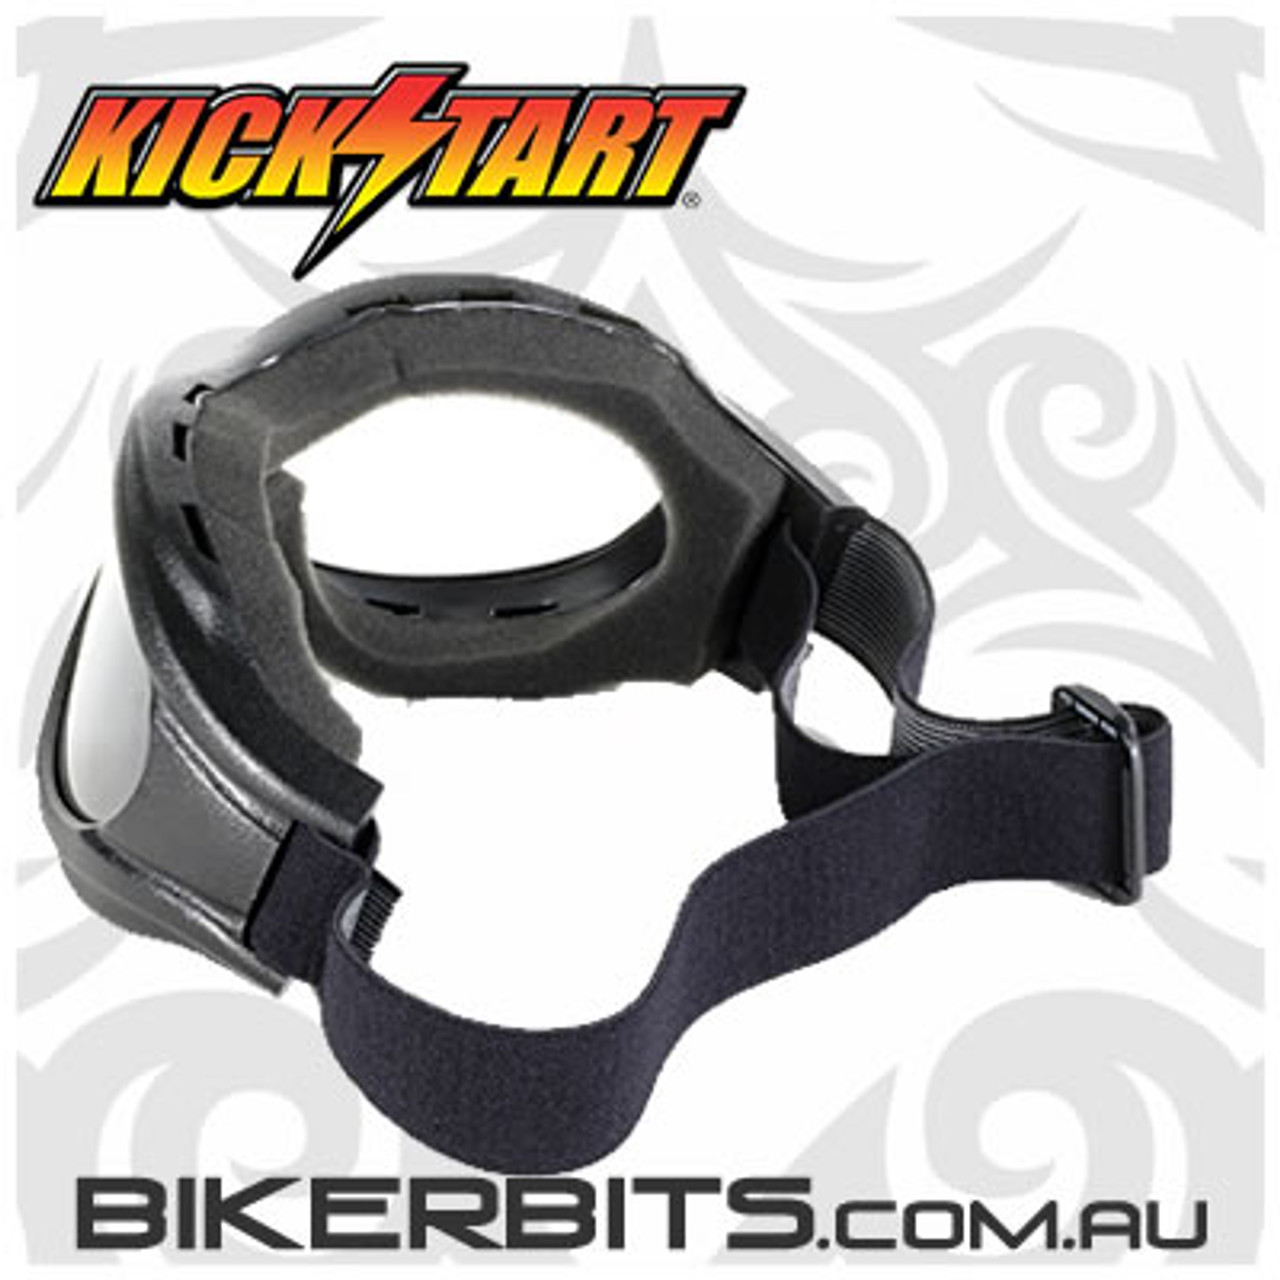 Motorcycle Goggles - Kickstart Beast- Clear/Black